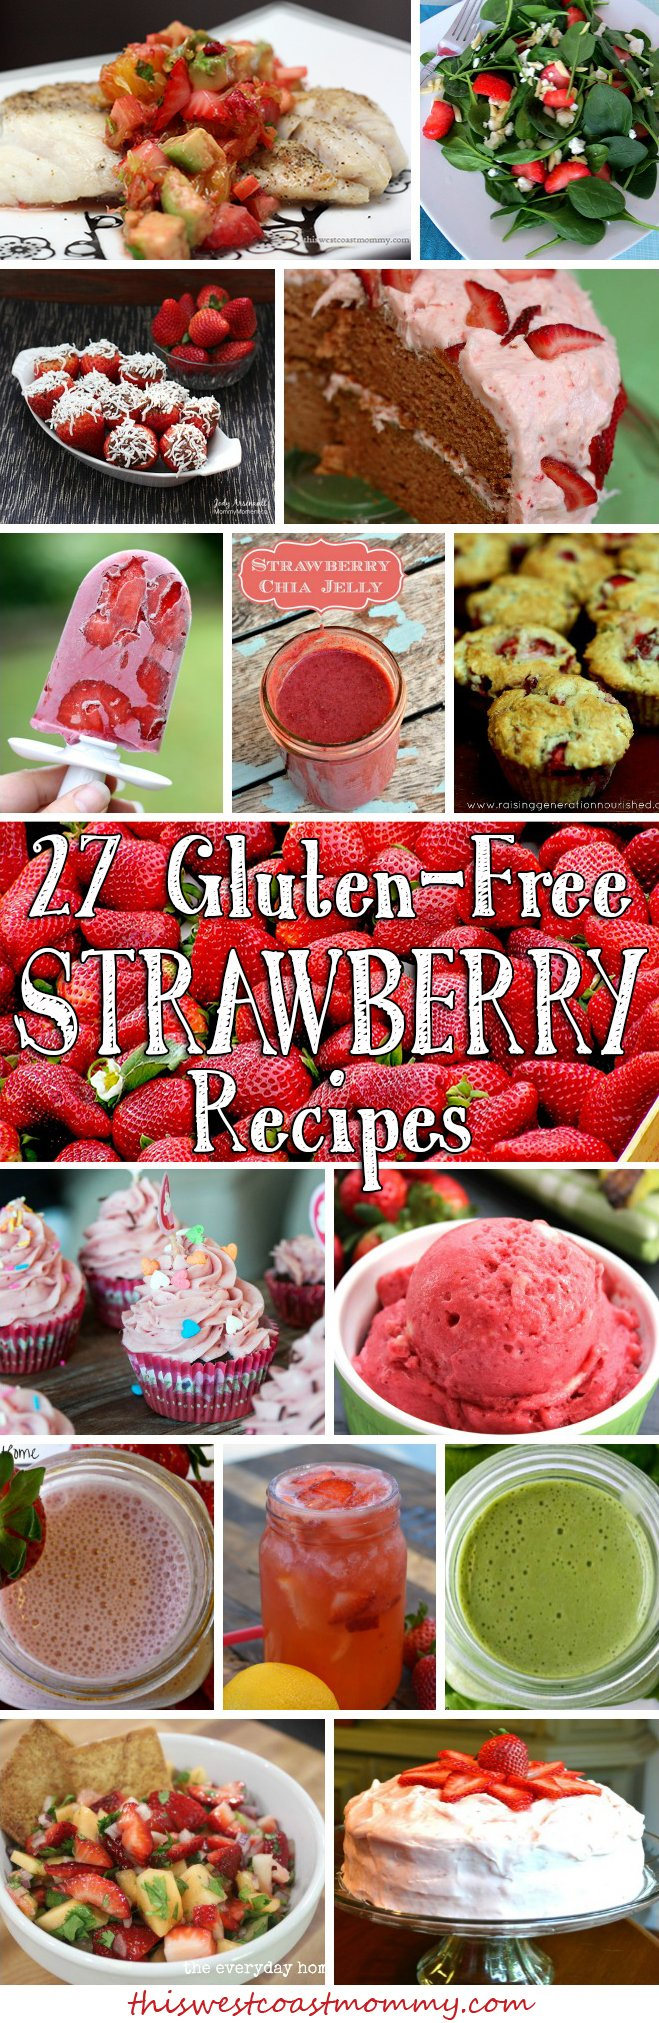 27 Delicious Gluten-free Strawberry Recipes for Strawberry Month!